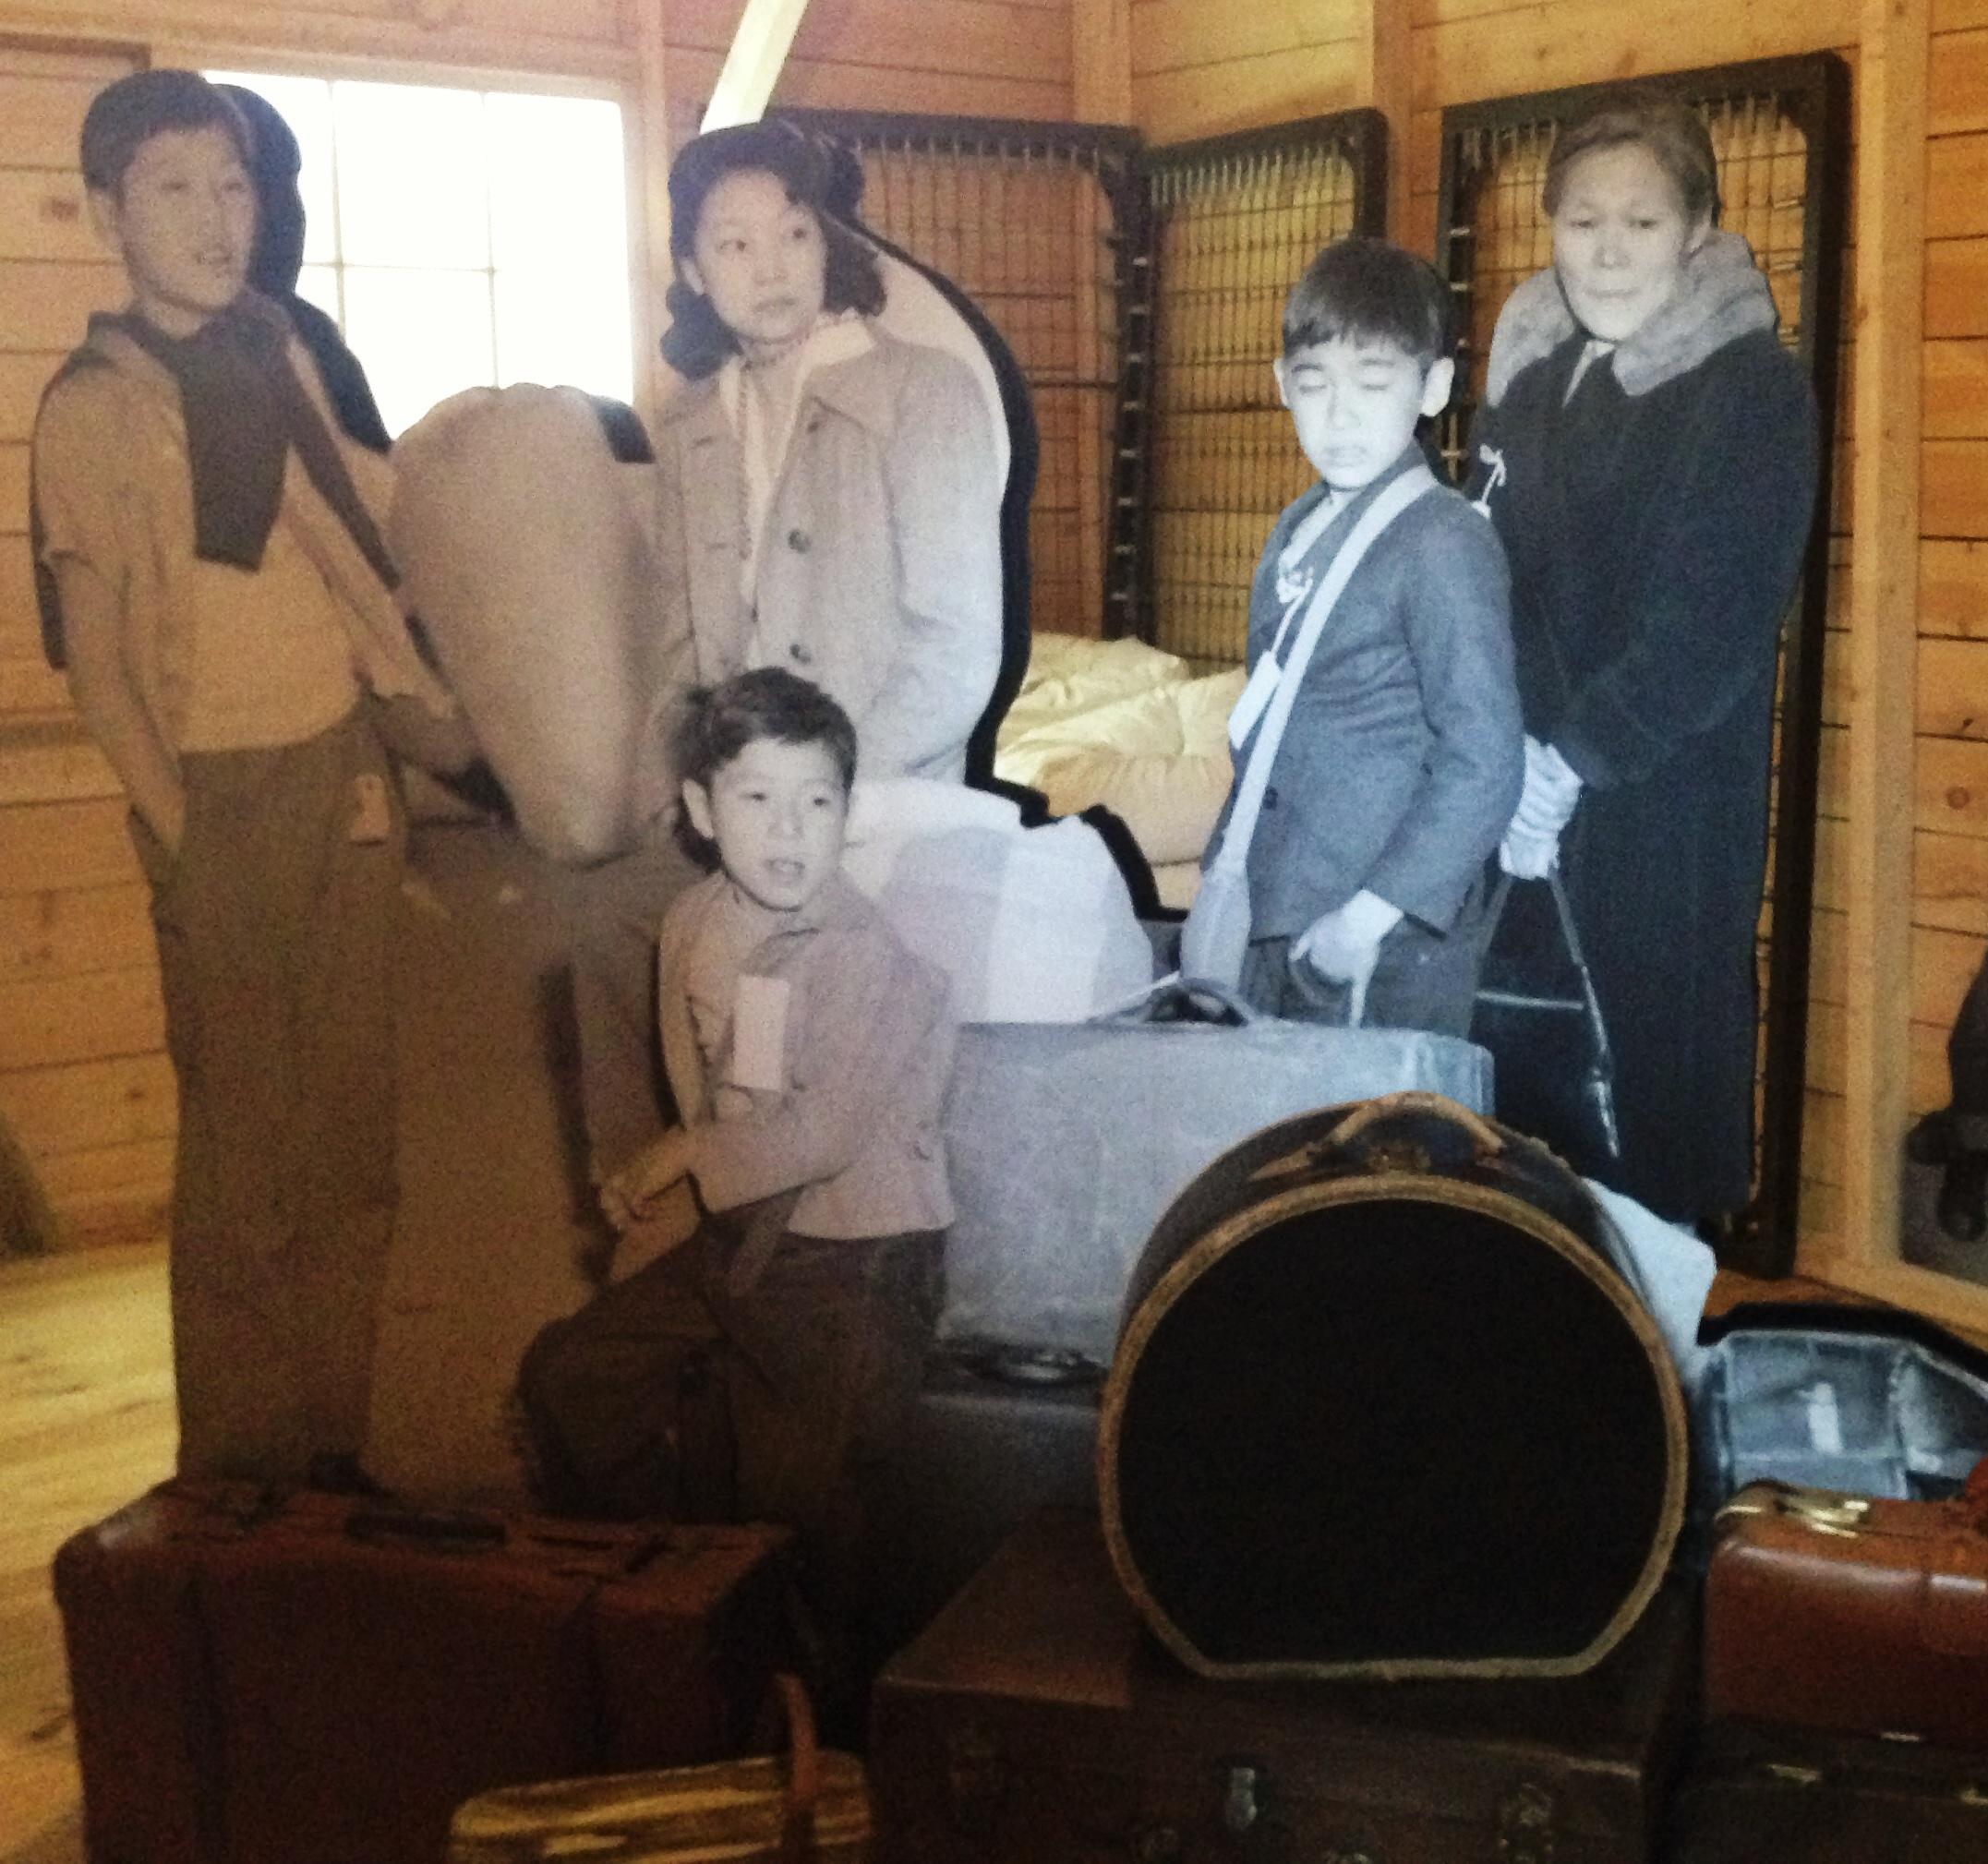 Japanese American family with their belongings